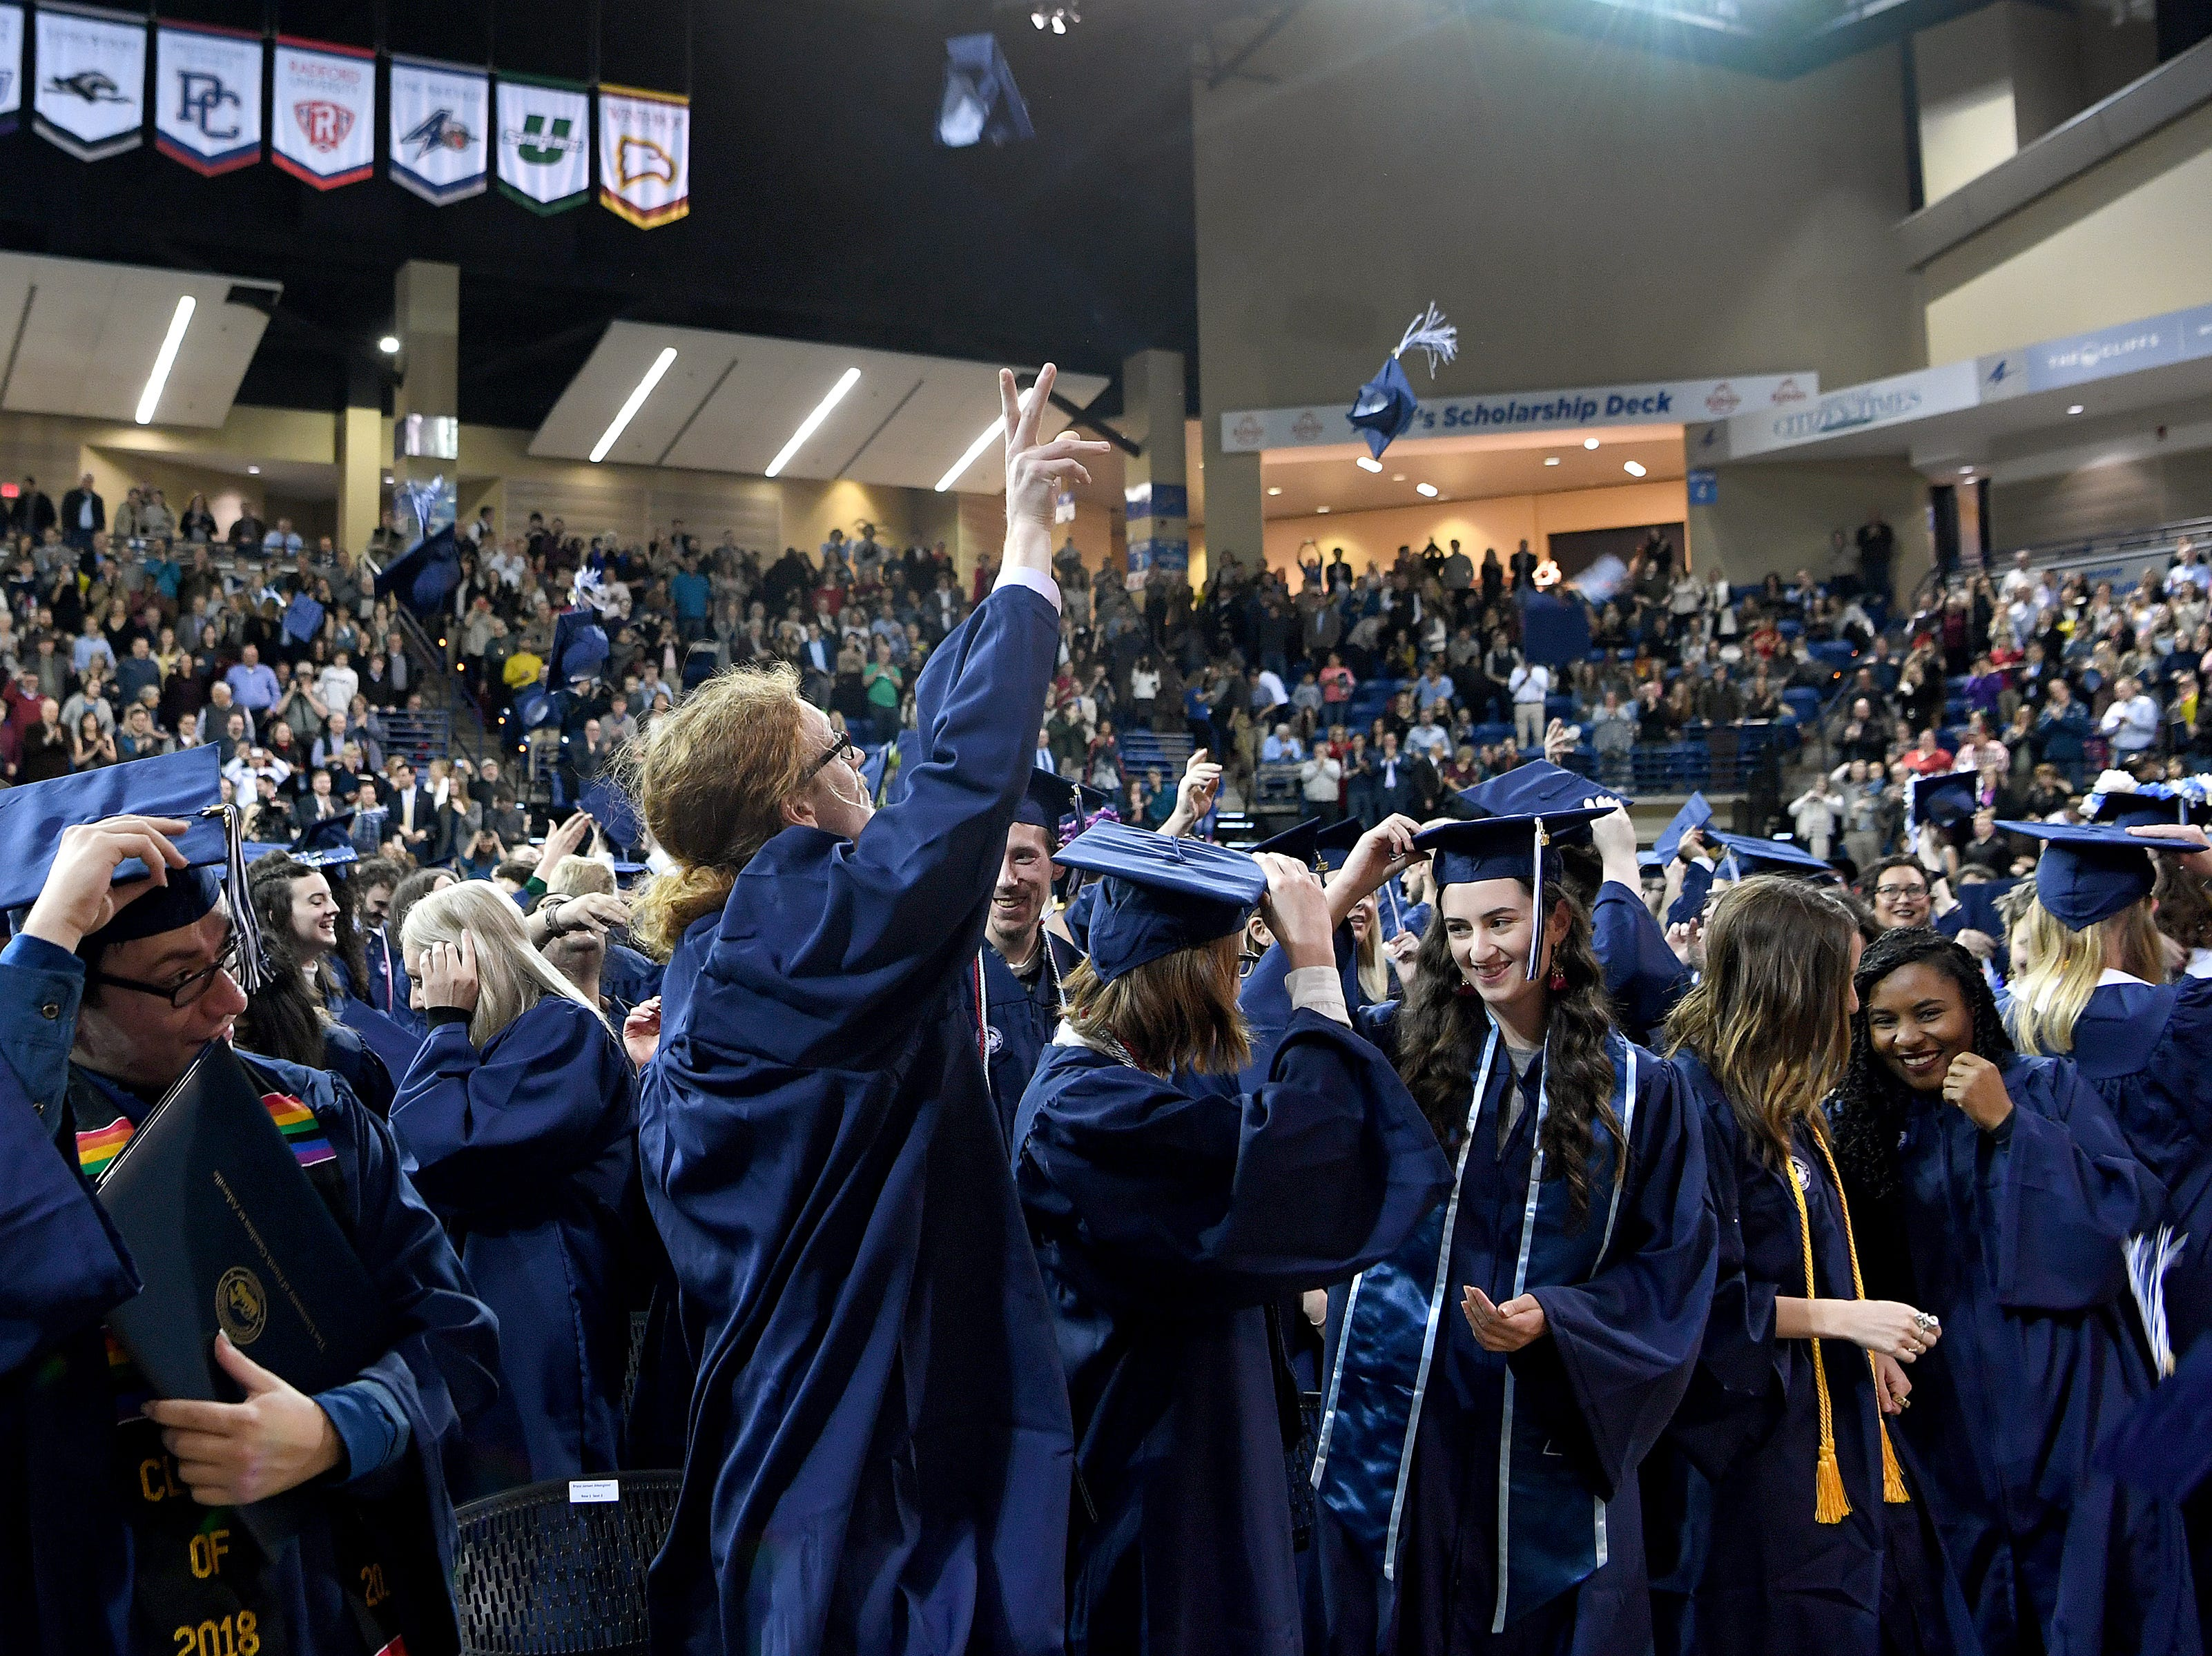 UNC Asheville graduates throw their caps at the end the winter commencement ceremony at Kimmel Arena on Dec. 14, 2018.